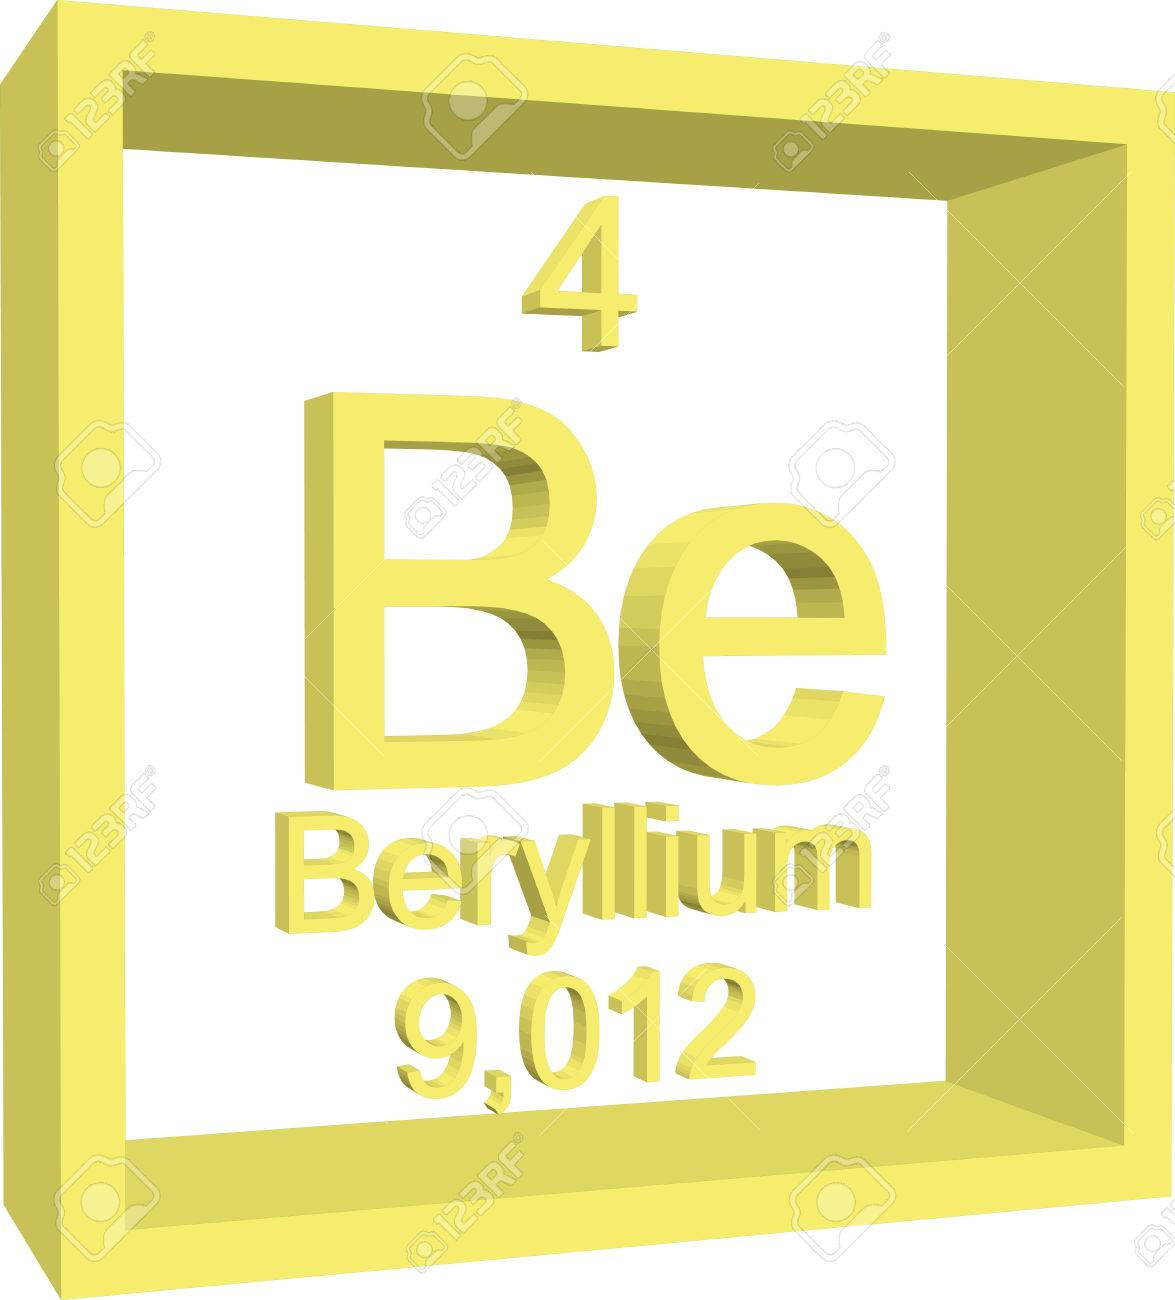 Periodic table of elements beryllium royalty free cliparts periodic table of elements beryllium stock vector 57967512 urtaz